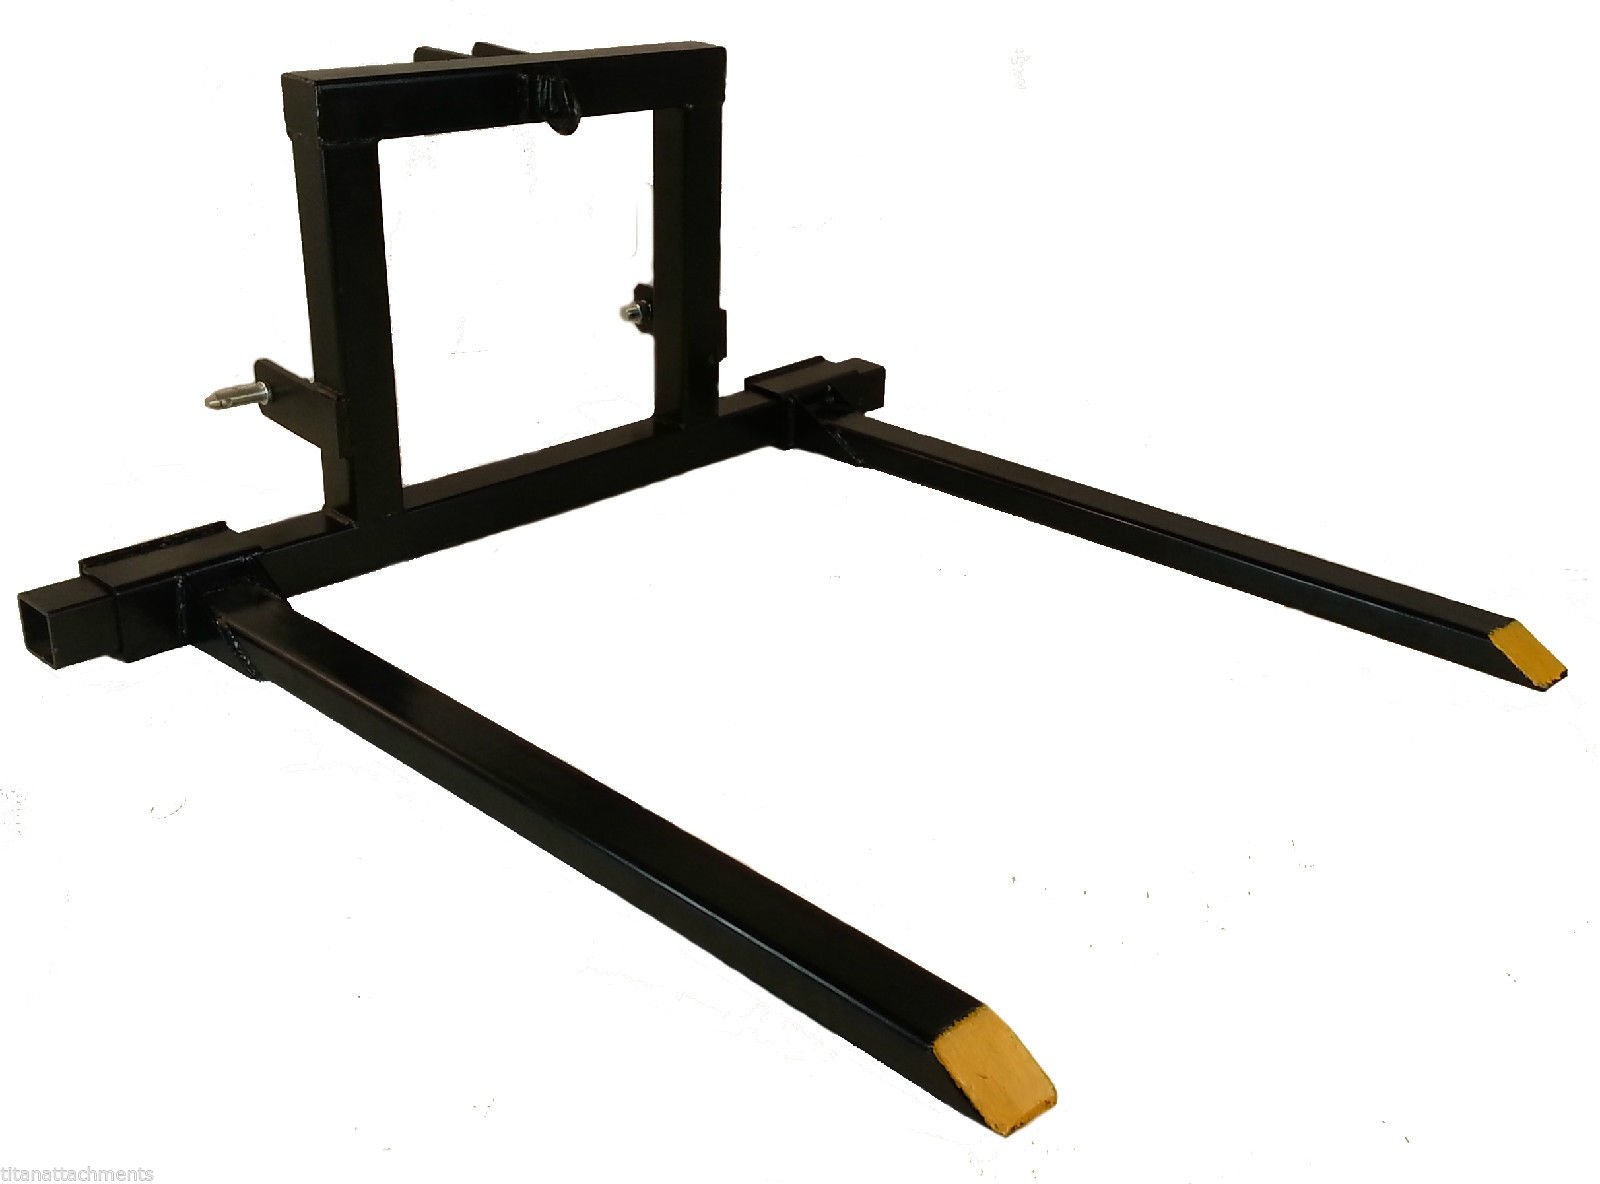 Titan 3 point hitch Pallet Fork Attachment Category 1 tractor carryall 3PT-PF by Titan Attachments